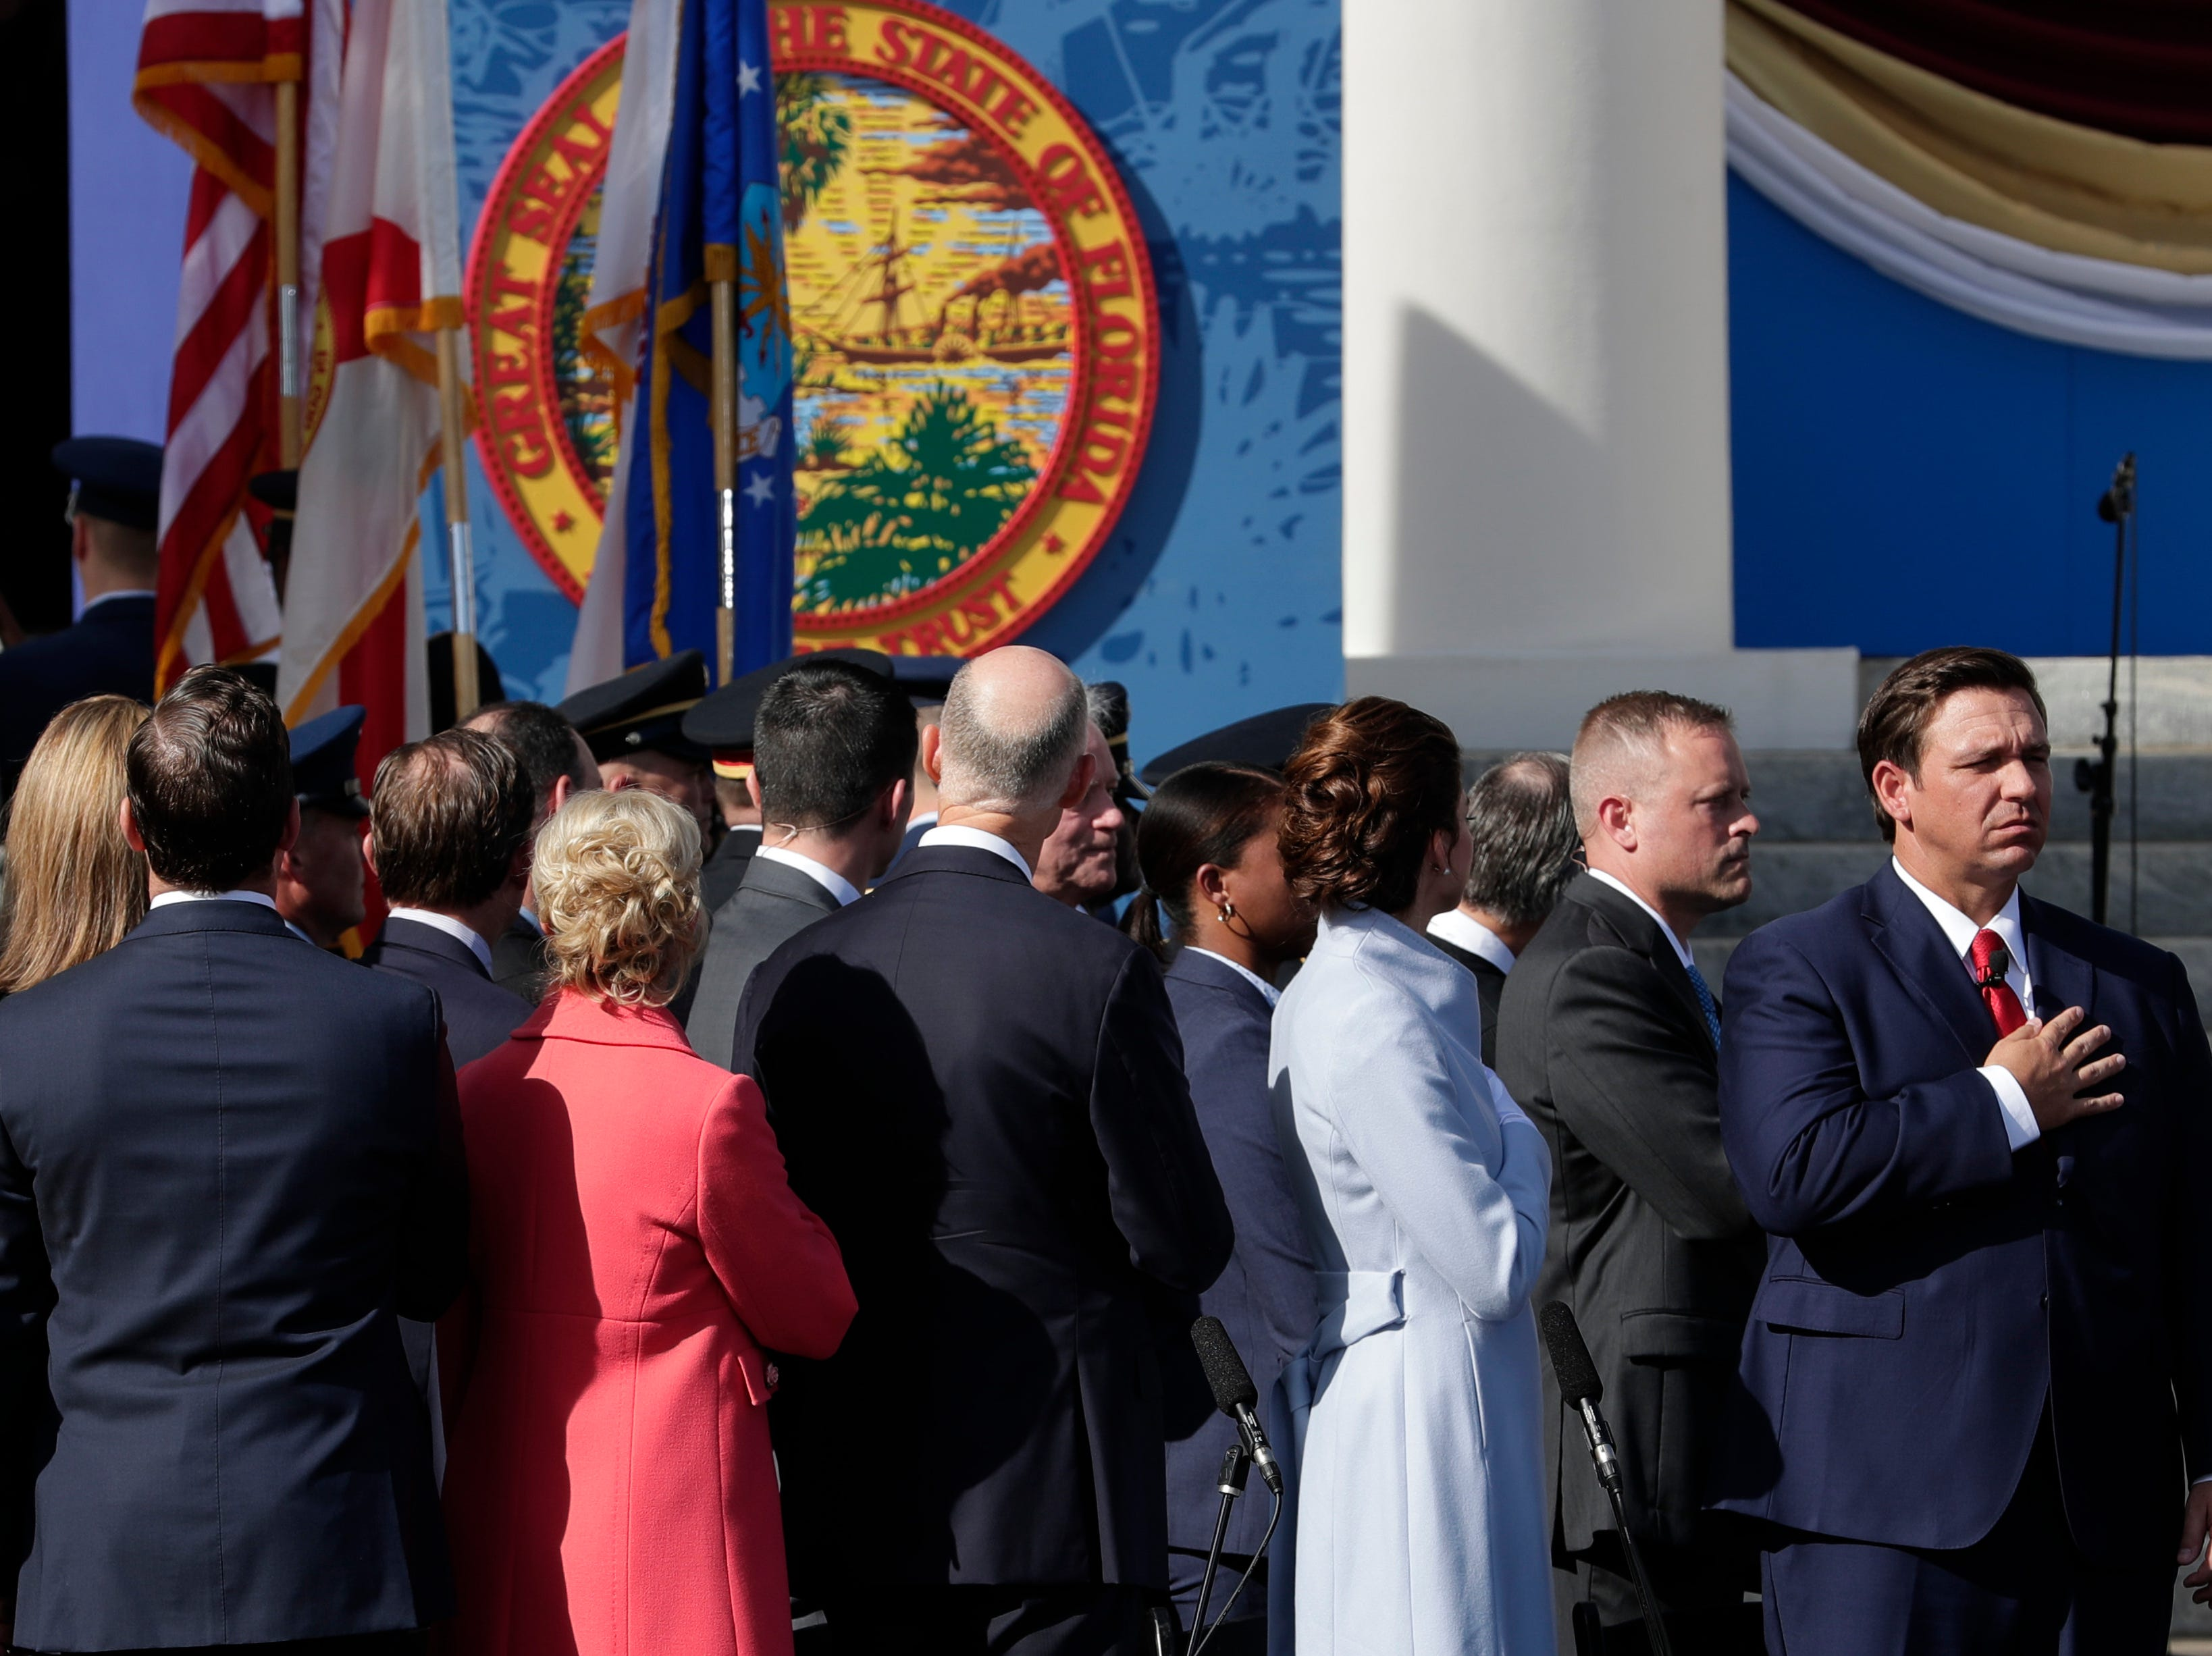 Gov. Ron DeSantis stands with his hand over his heart as the Florida National Guard performs the posting of the colors during the 2019 inauguration ceremony on the steps of the Historic Capitol Building in Tallahassee Tuesday, Jan. 8, 2019.